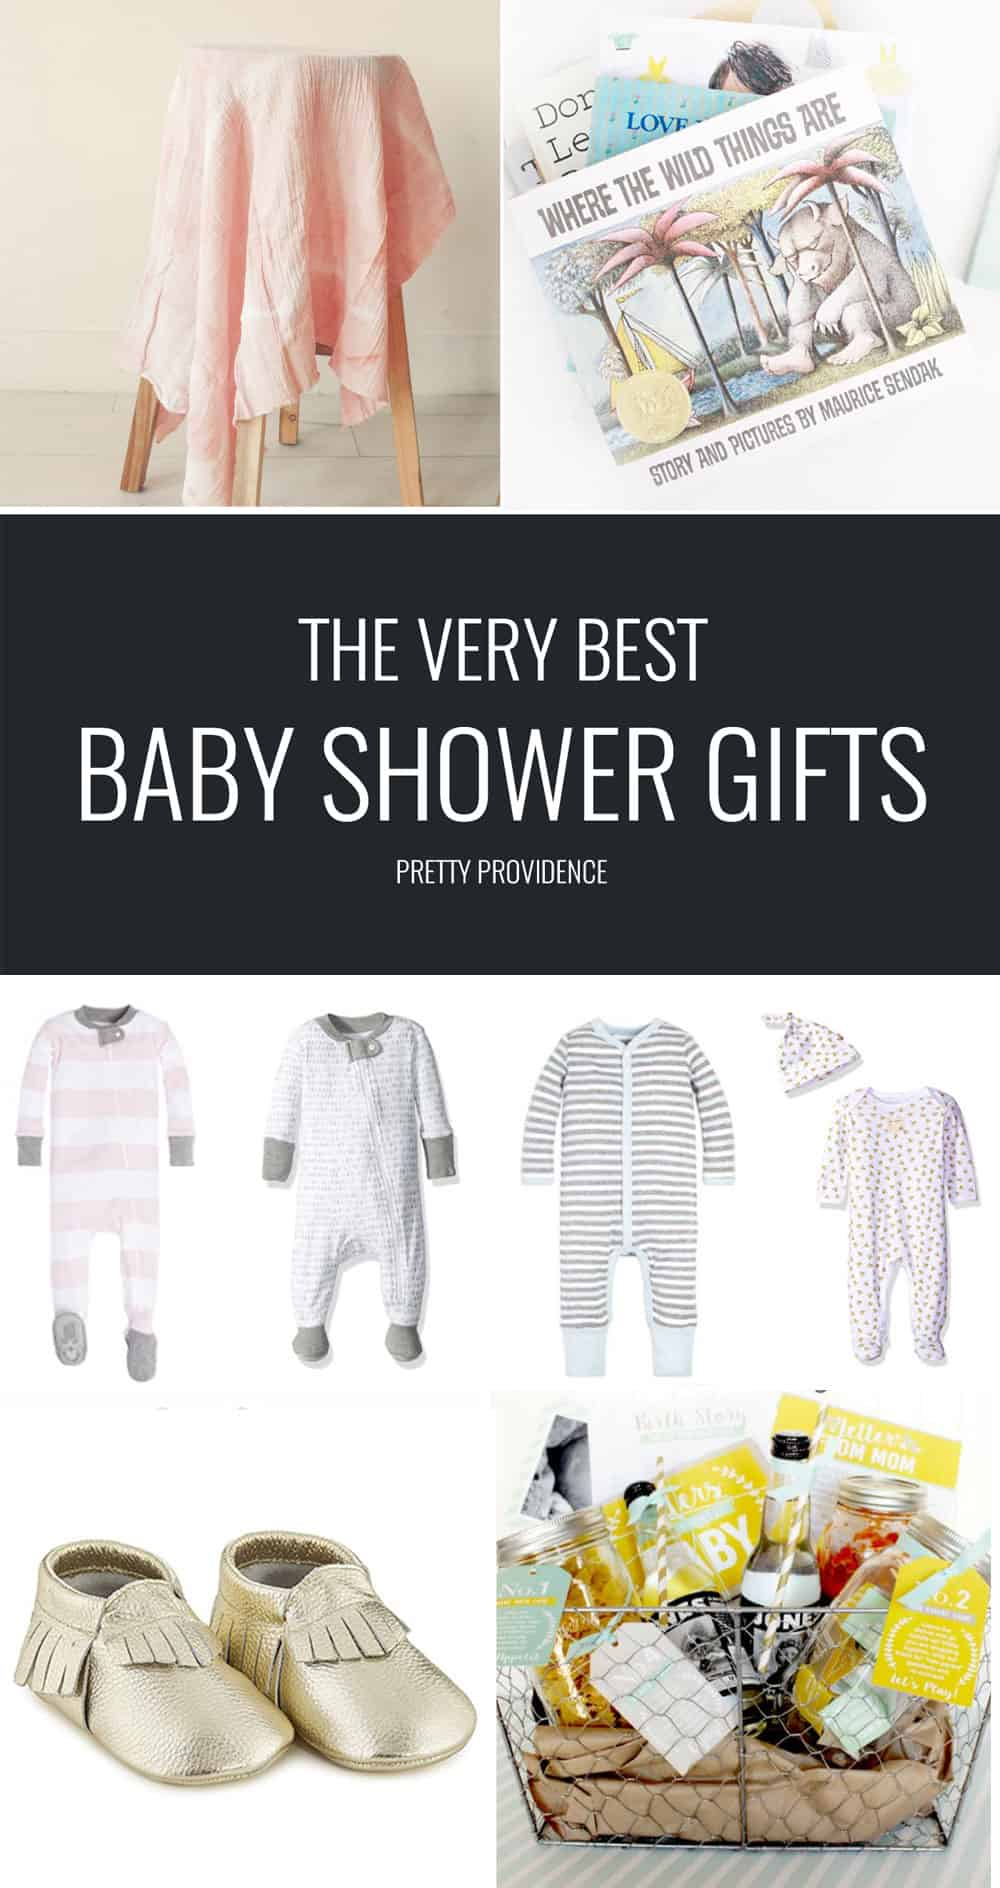 The Best Baby Shower Gift Ideas!